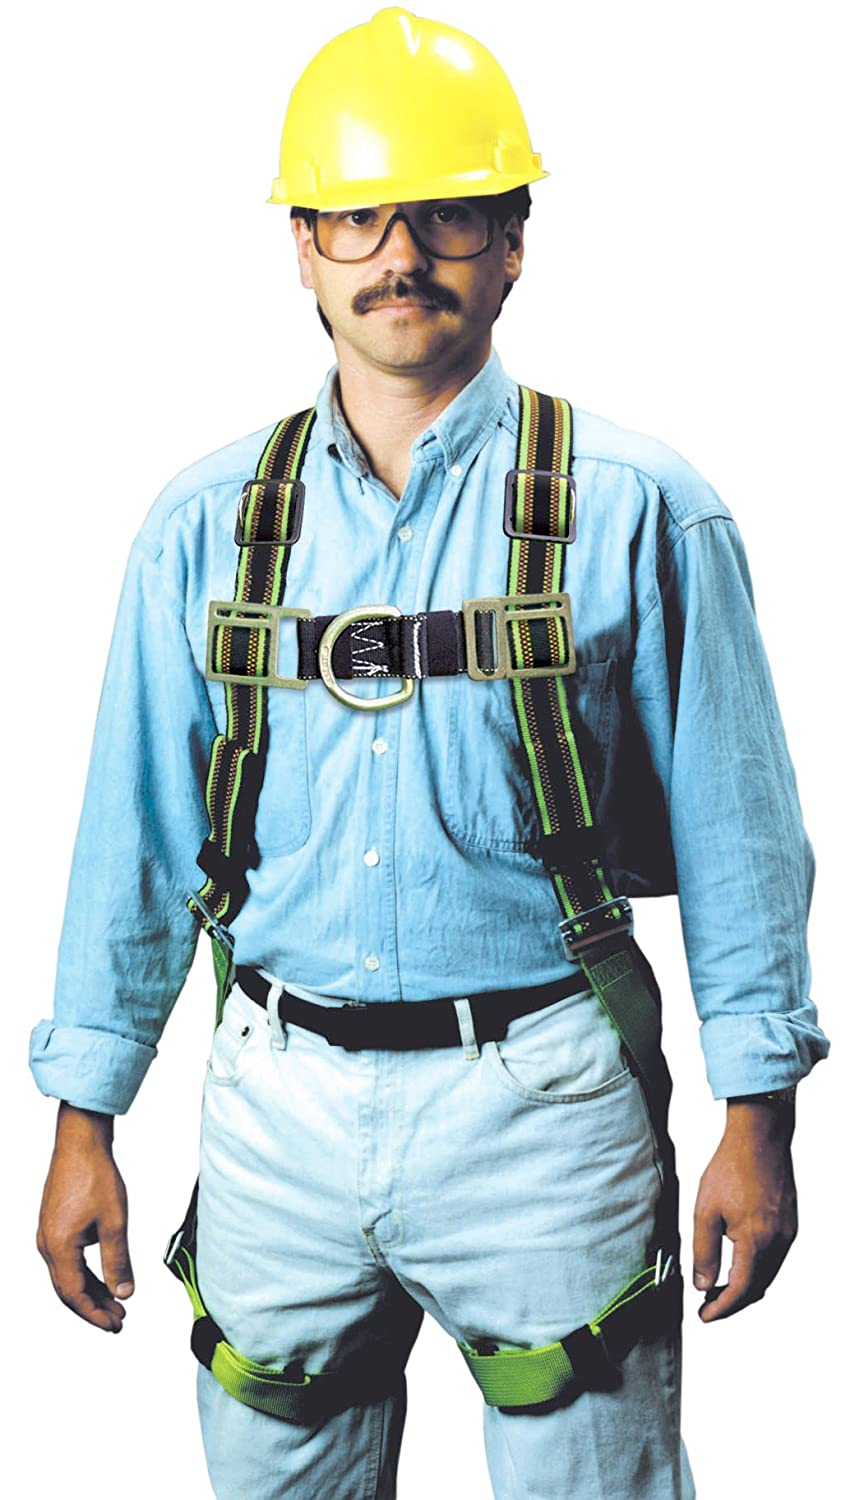 Miller by Honeywell E650FDQC-58/UGN DuraFlex Ultra Stretchable 650 Series Full-Body Harness with tongue Buckles miller titan by honeywell ac qc xsbl aircore full body harness x small blue